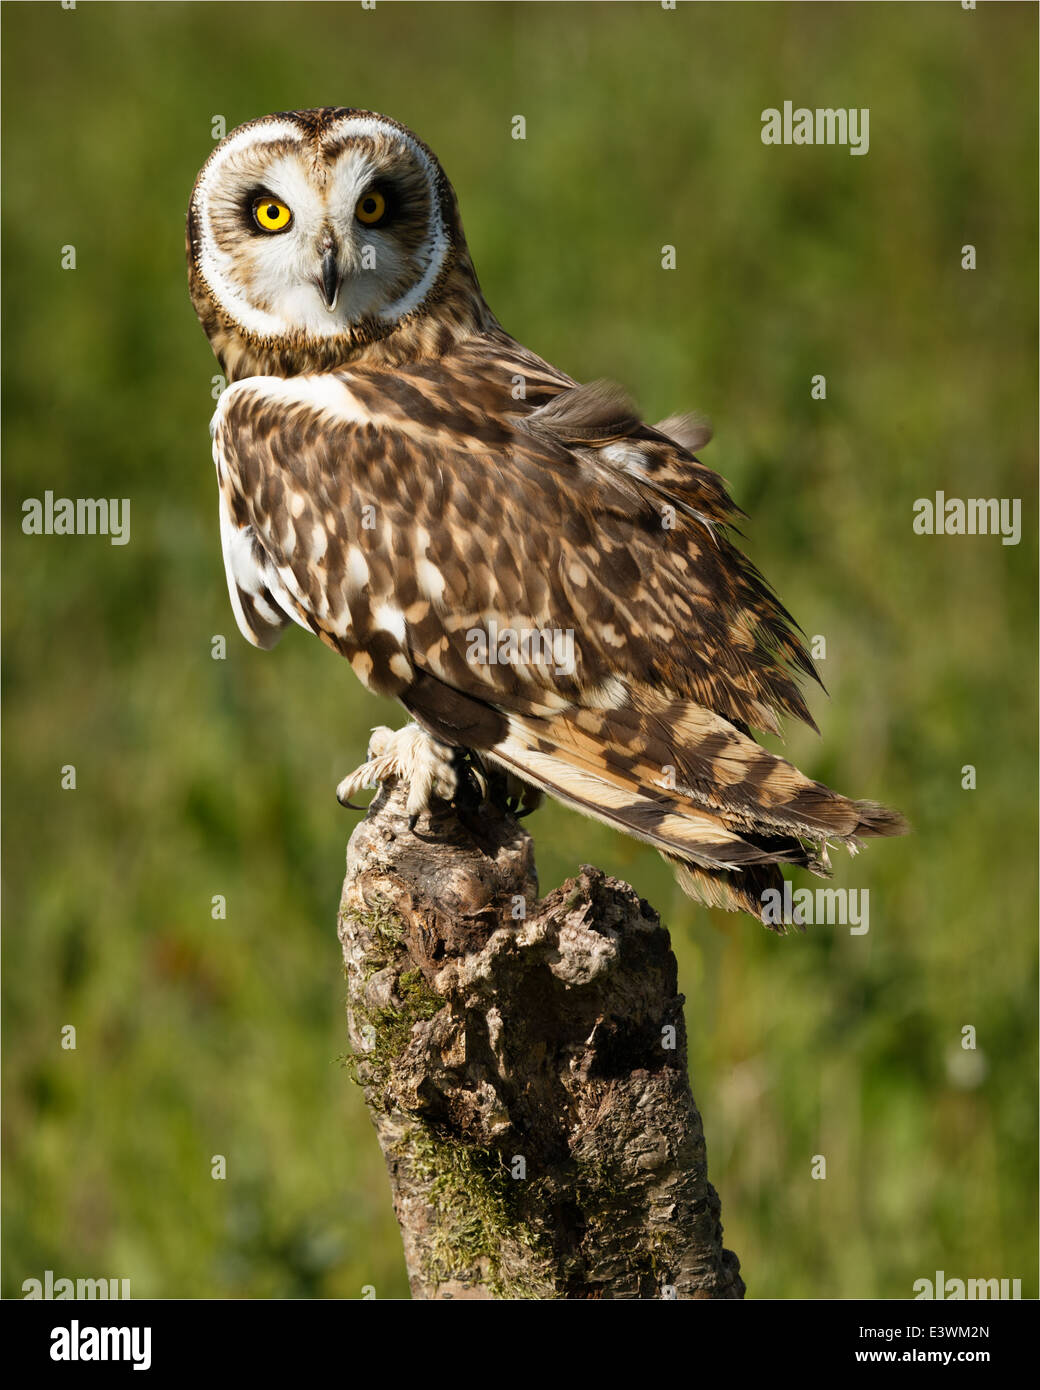 Alert Short-eared Owl Perching On A Fence Post - Stock Image